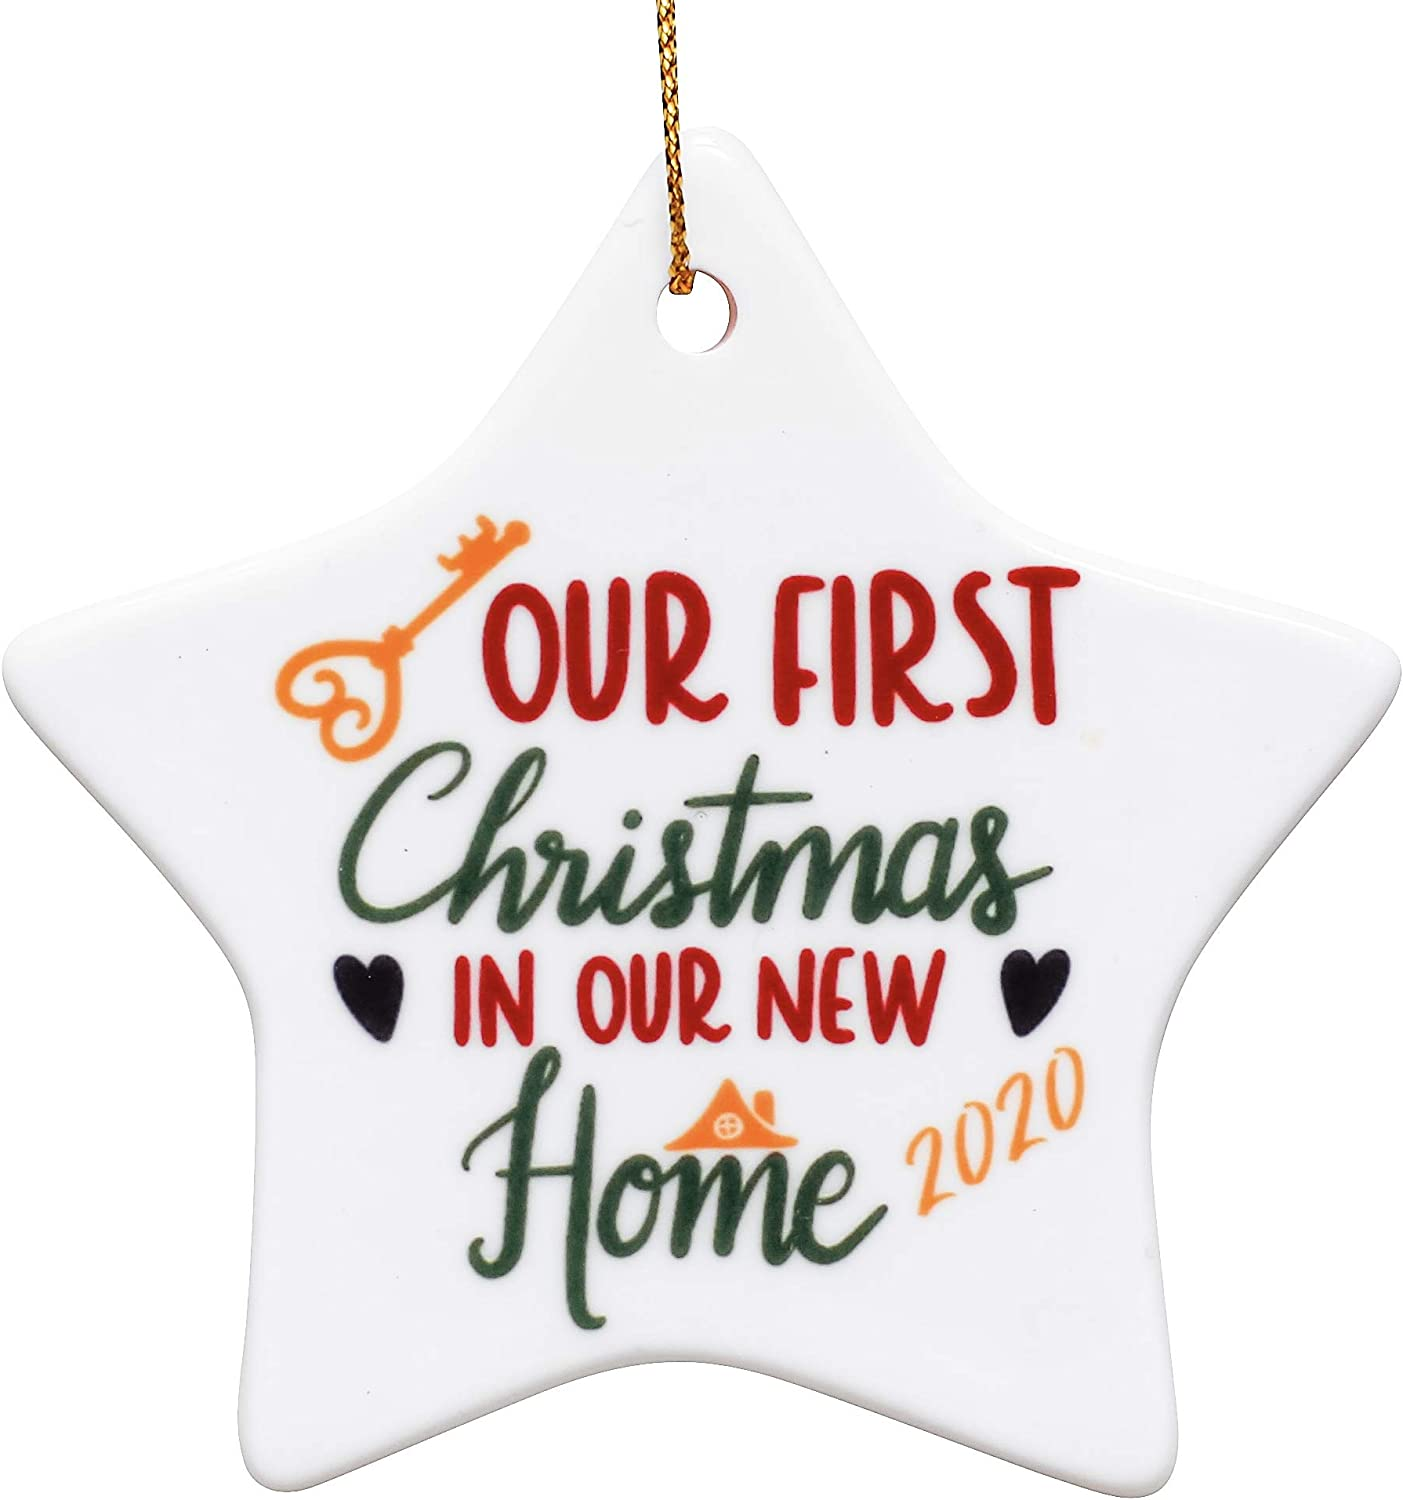 Heart's Sign Ceramic First Christmas in New Home Ornament 2020 | Xmas New Homeowner | New Home Gifts for Home | Our First Apartment Ornament 2020 | New House Gifts for Newlyweds Home